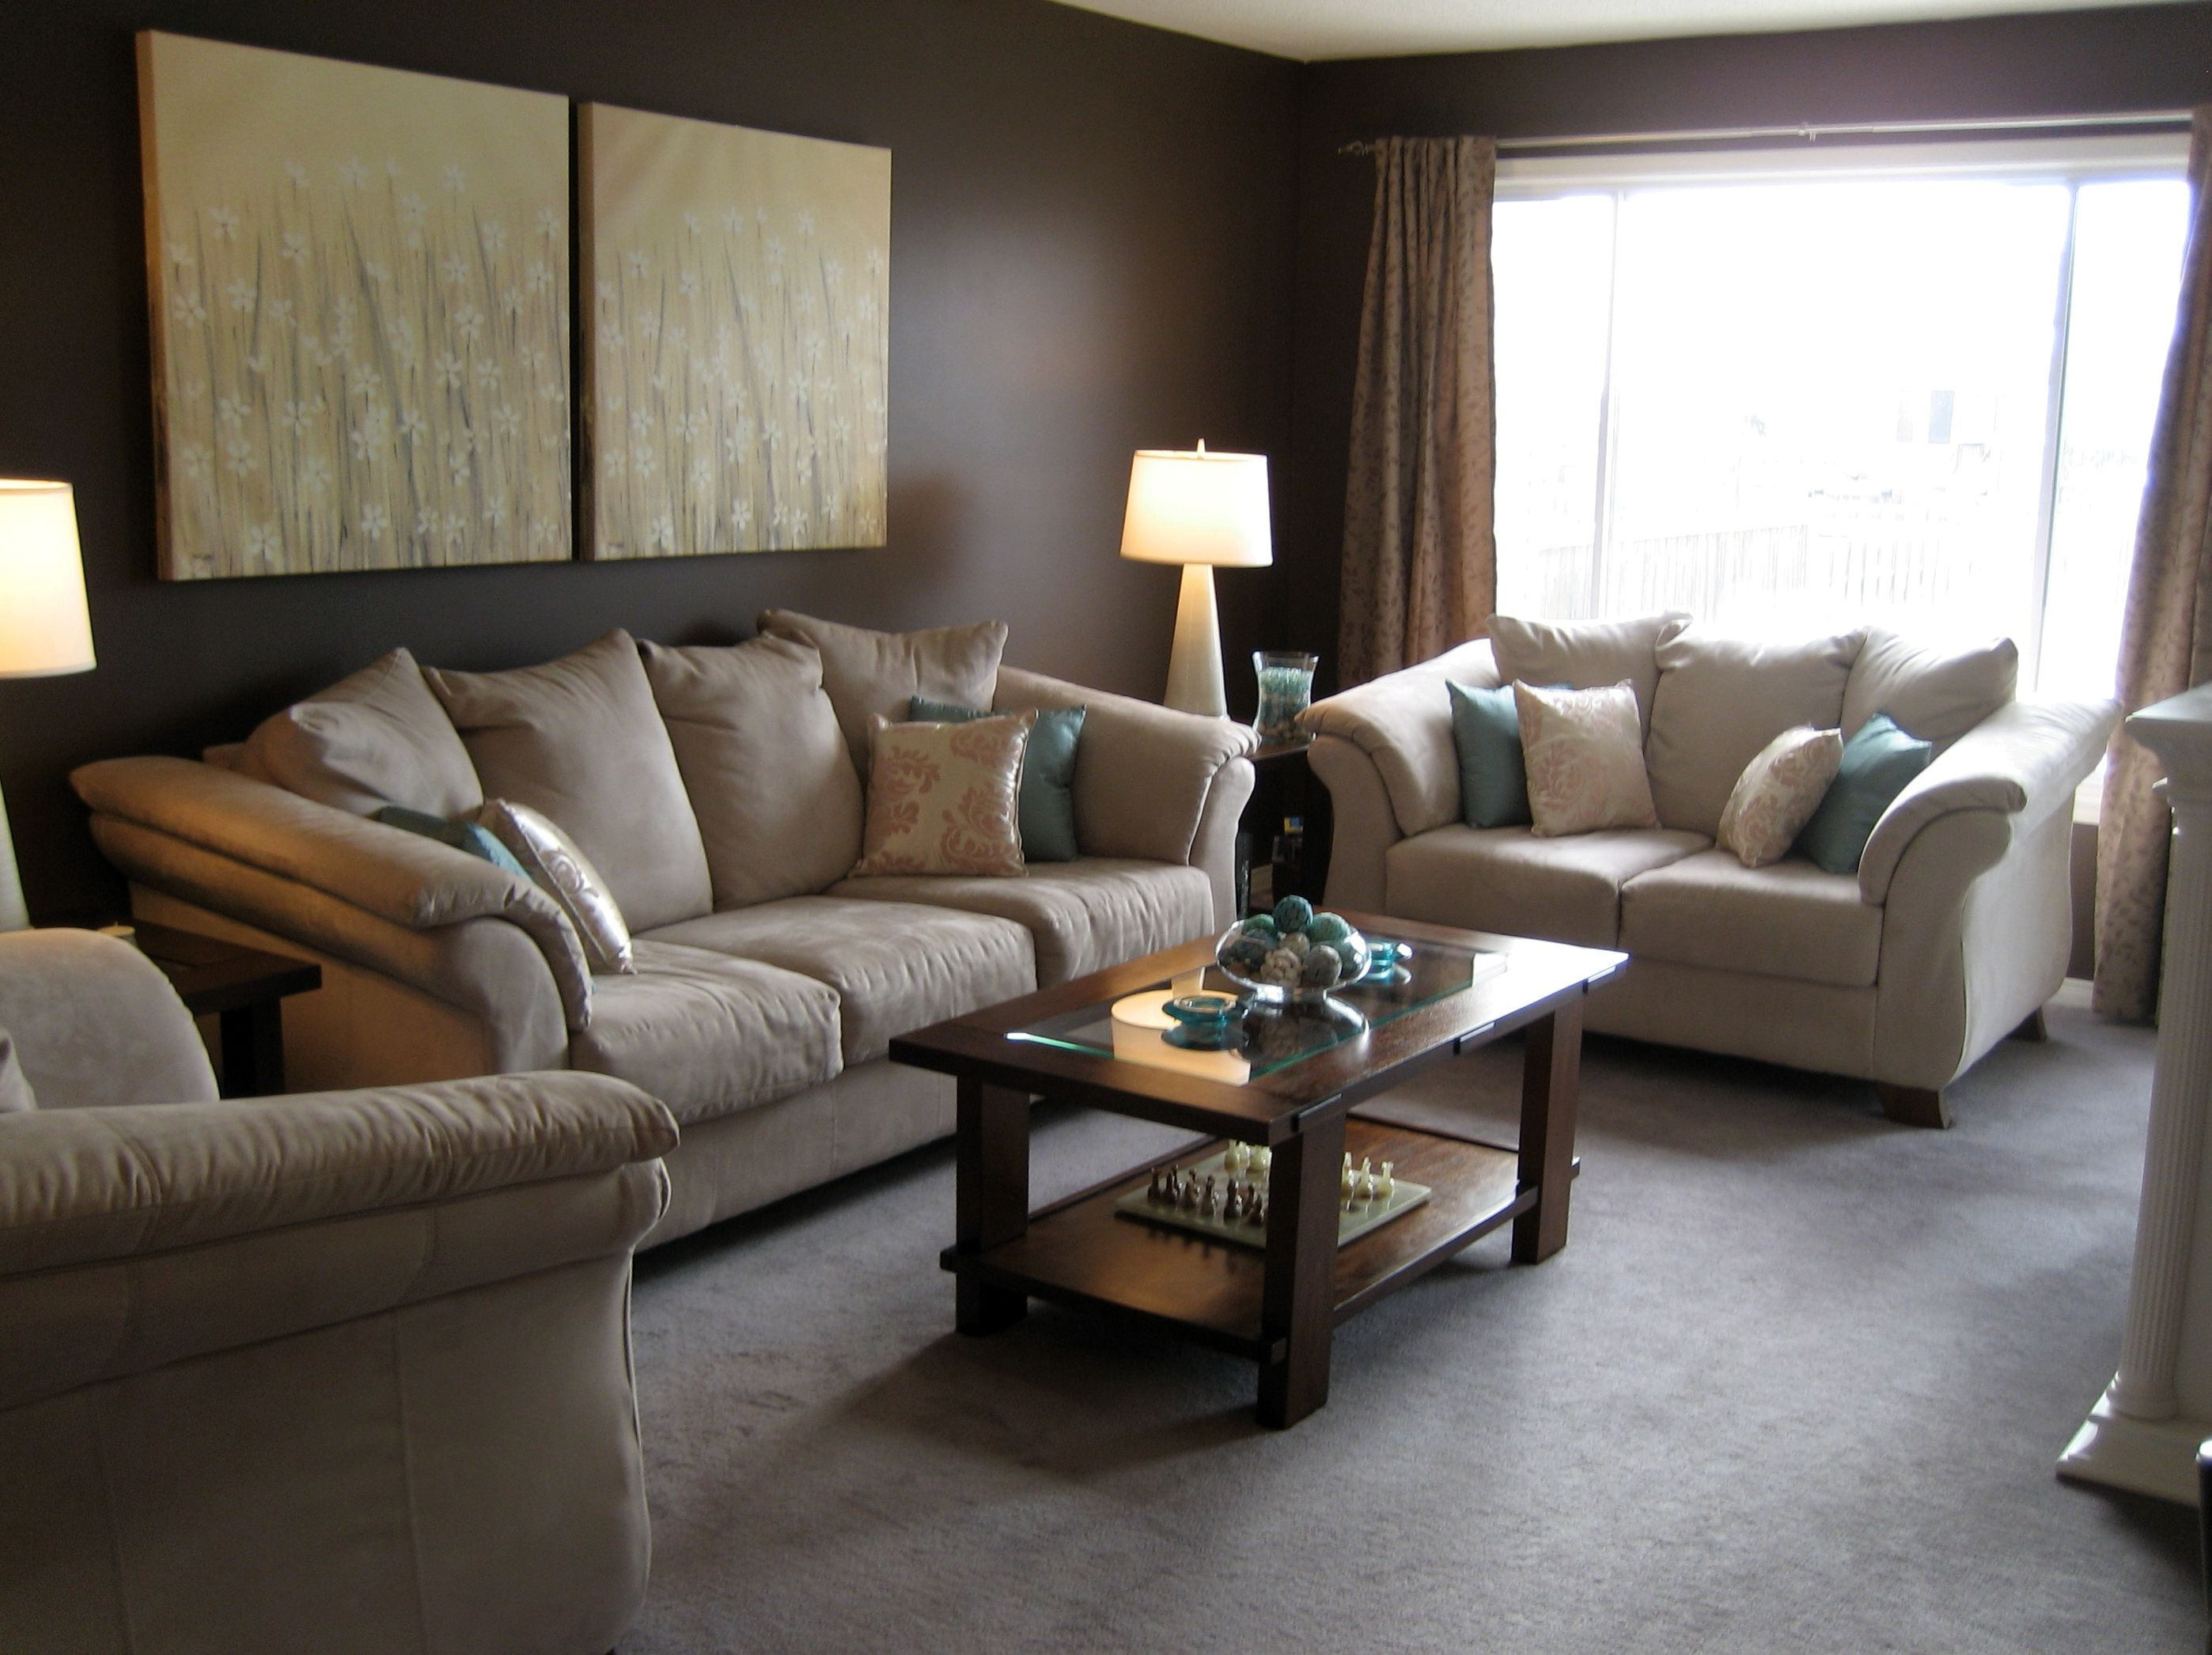 Wall Colors For Living Room With Beige Furniture | Brown ...